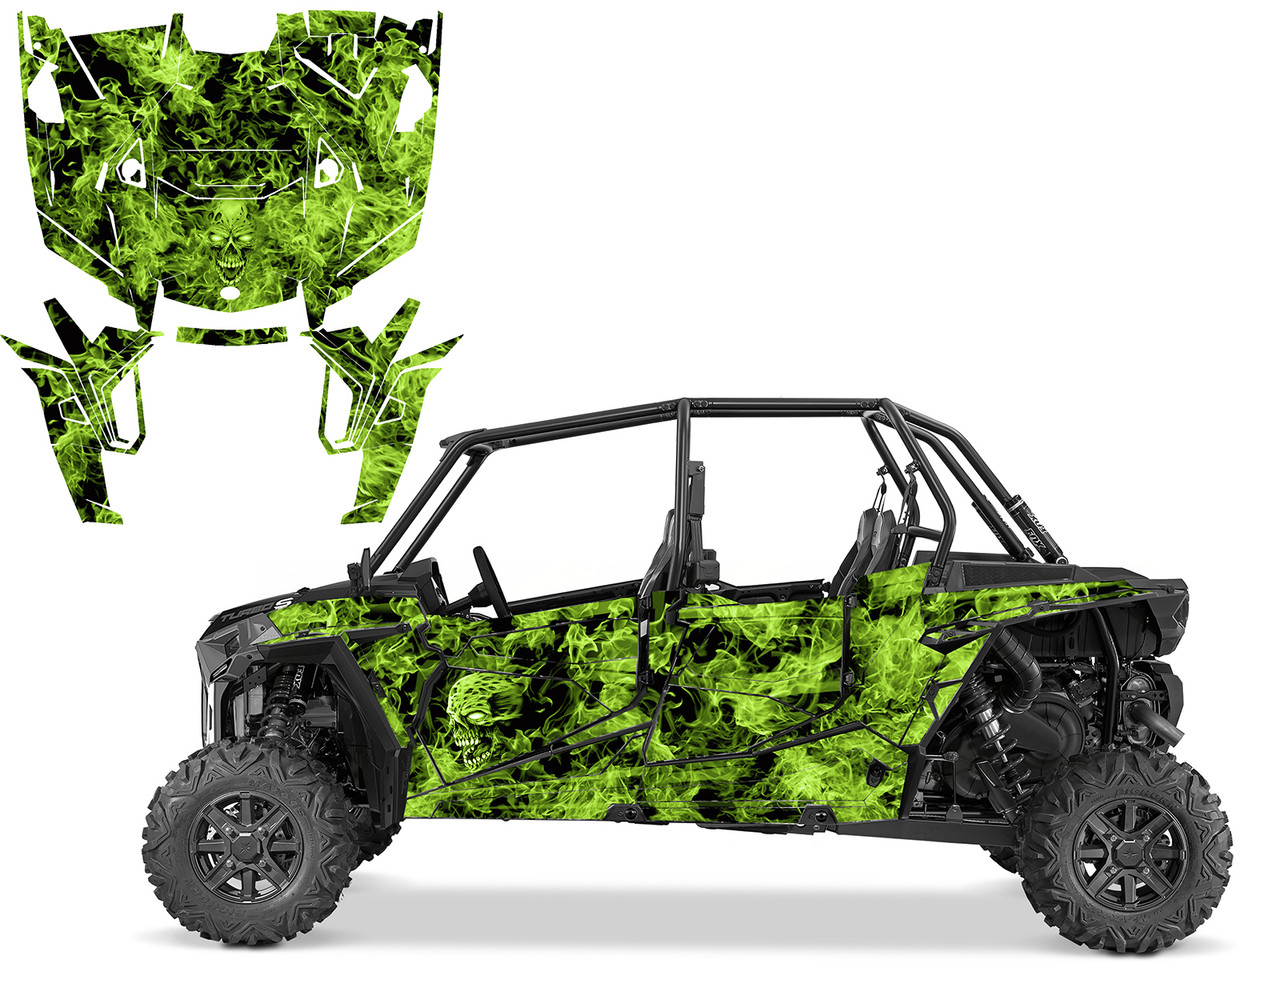 2019 RZR4 graphics wrap kit with Zombie